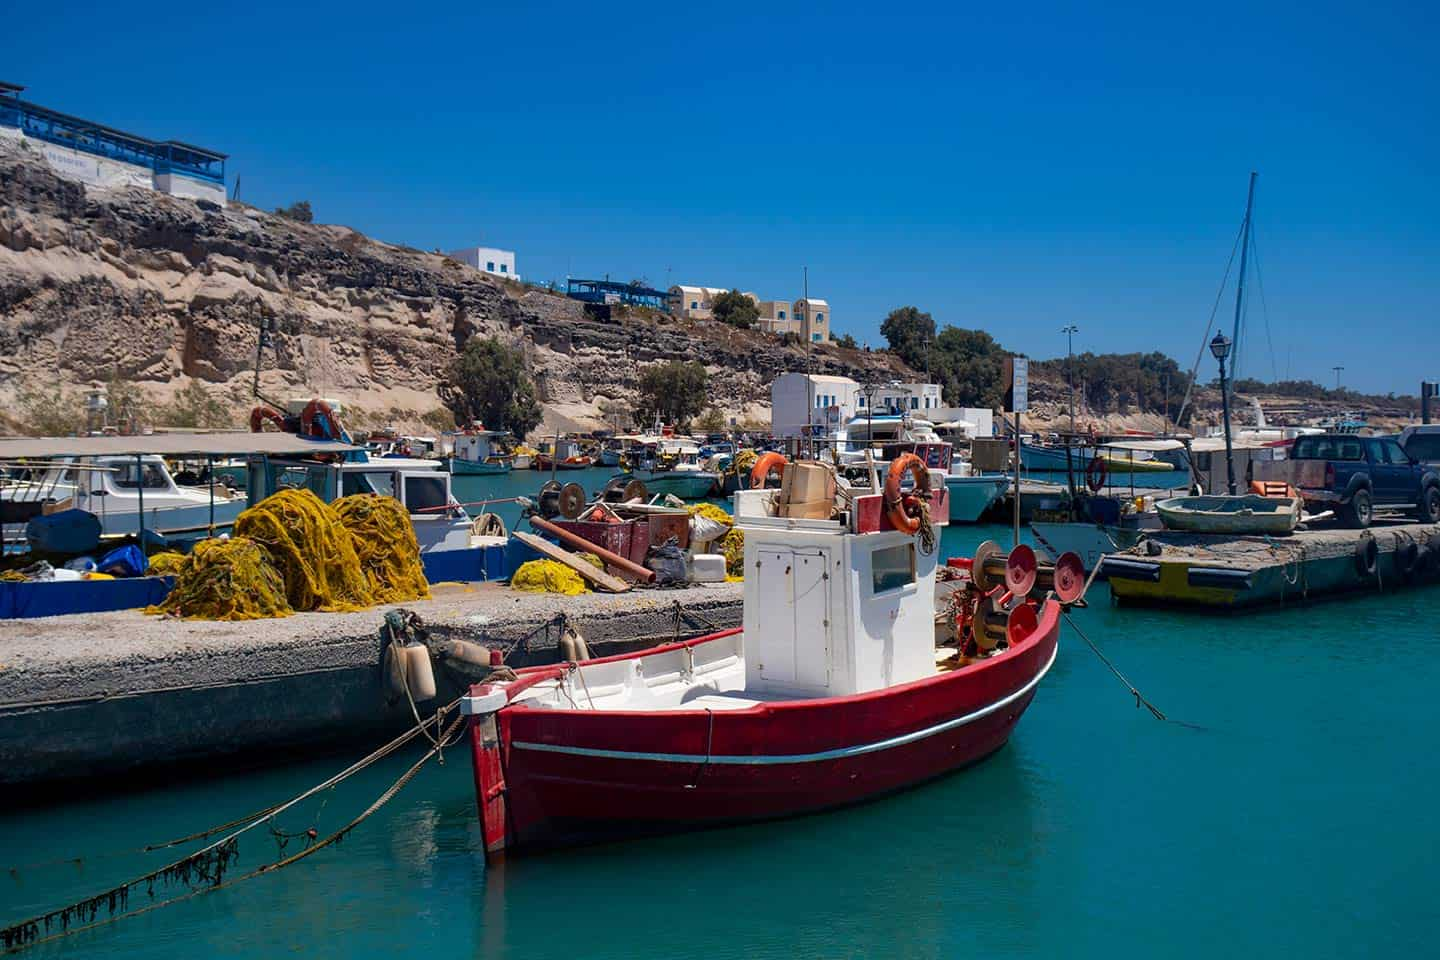 Image of fishing boats in the harbour at Vlychada, Santorini, Greece